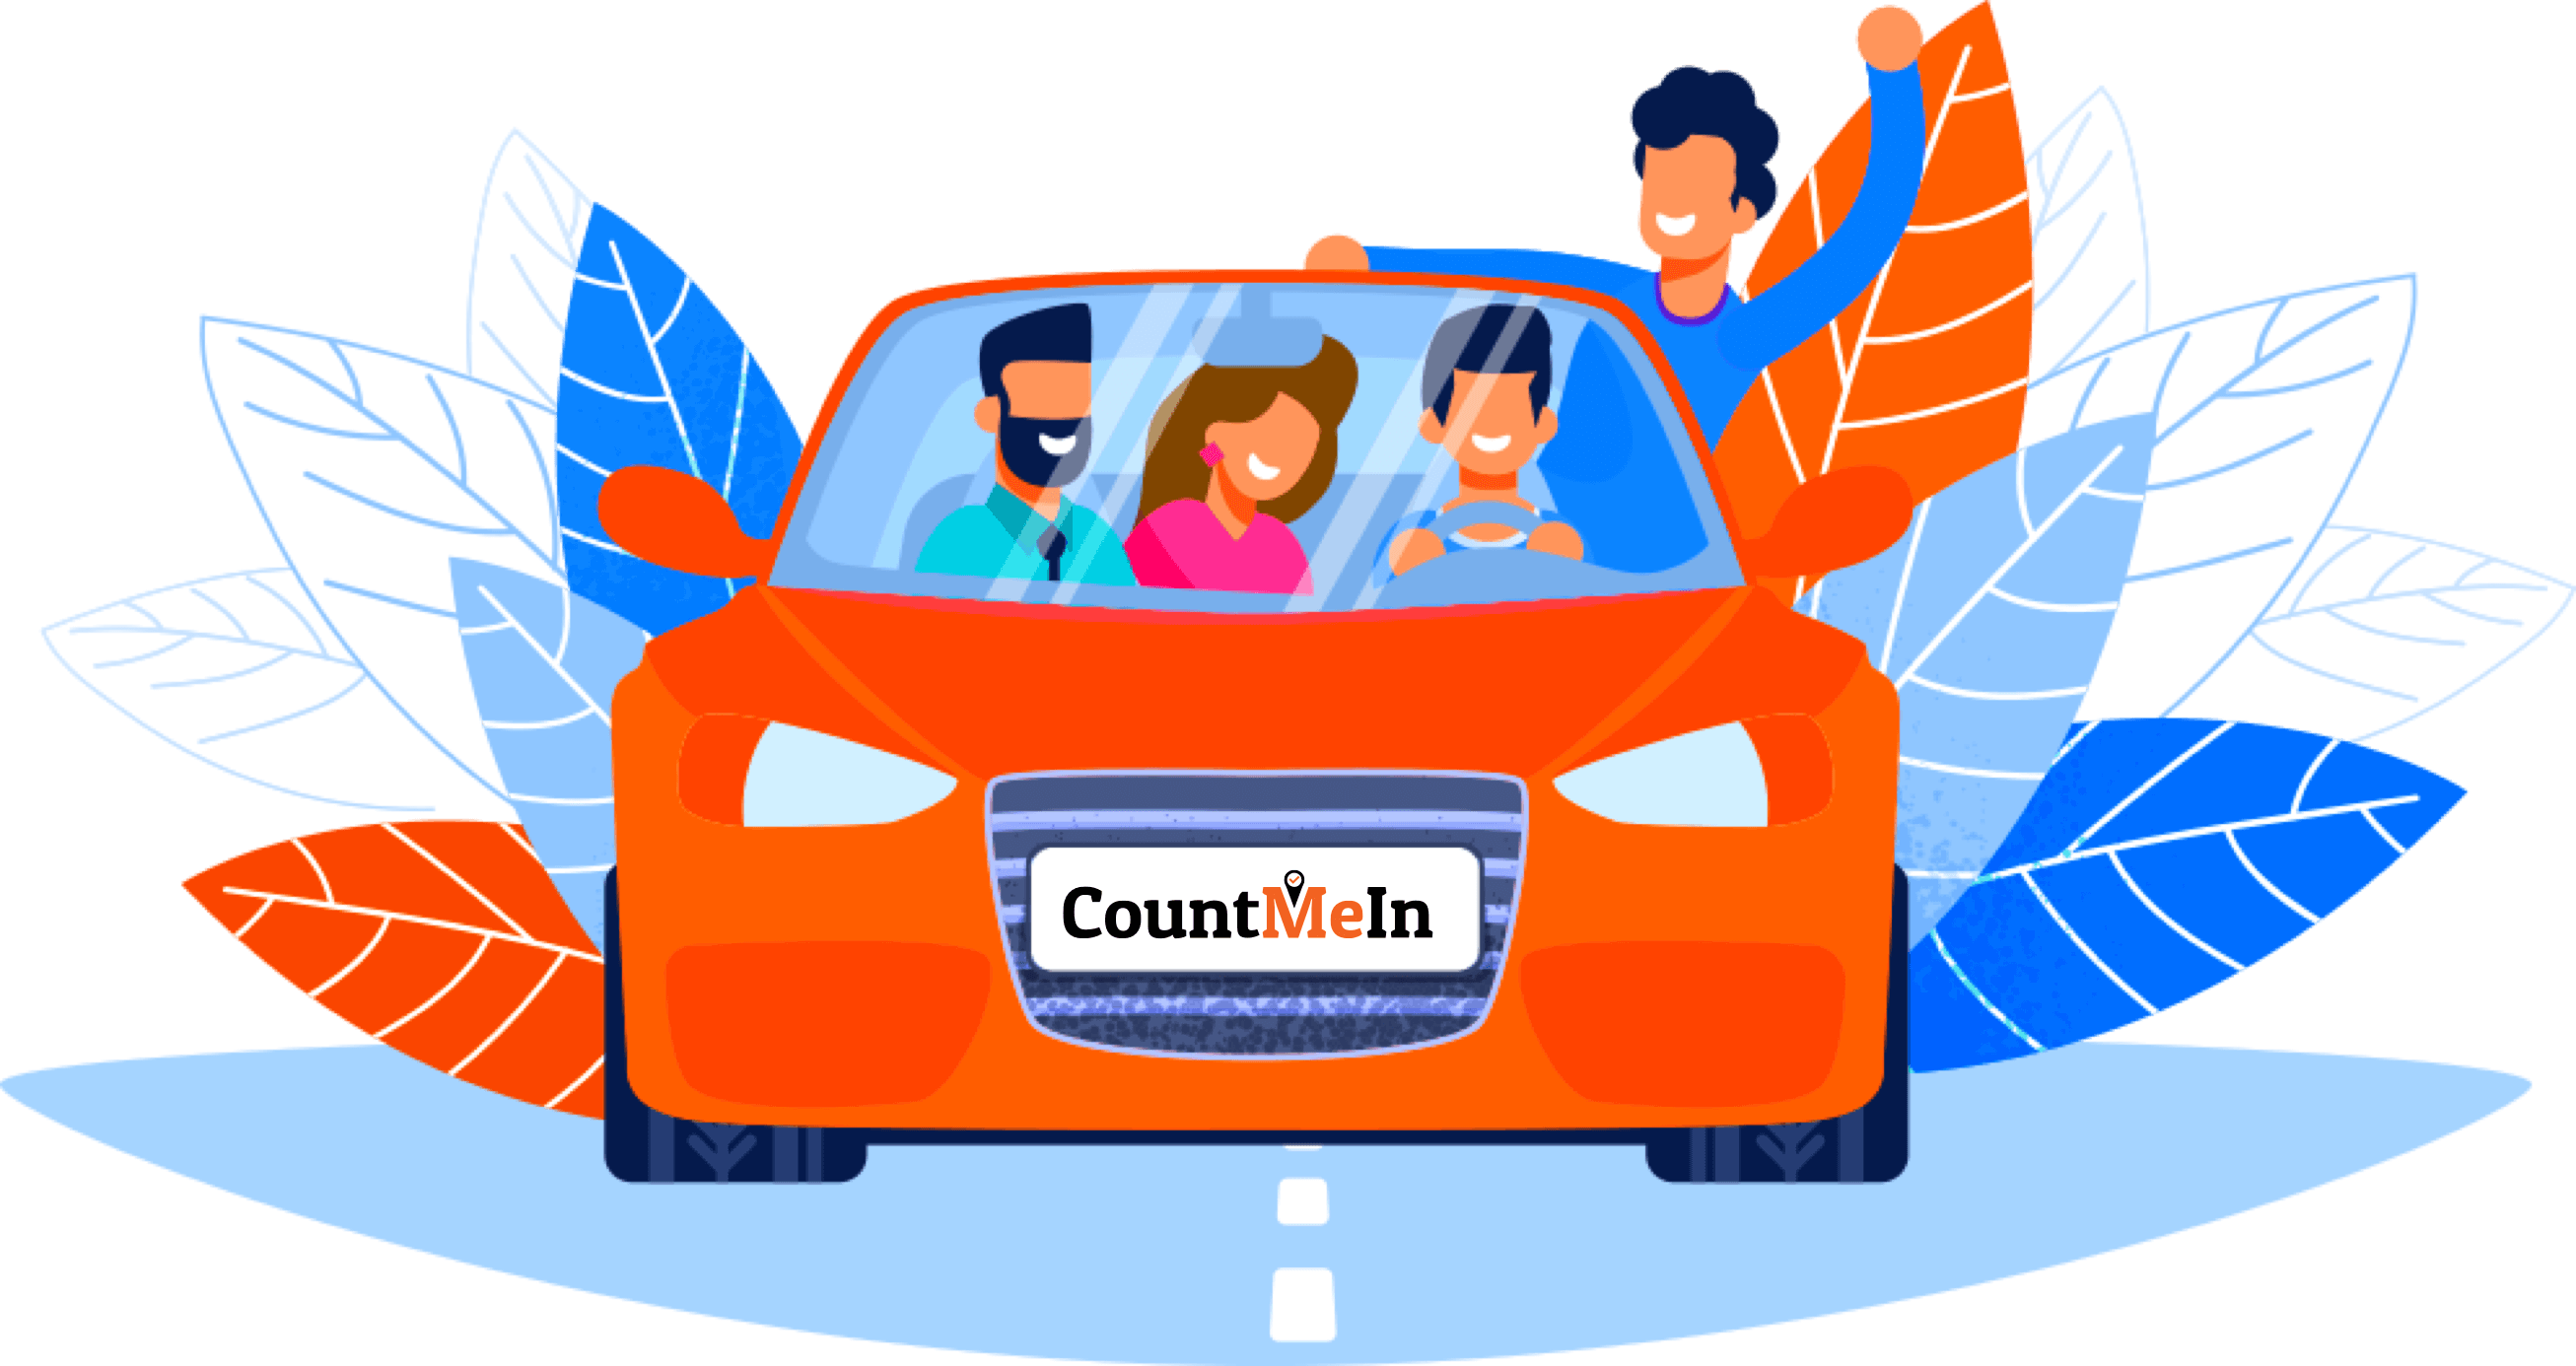 A car with 4 passengers illustration